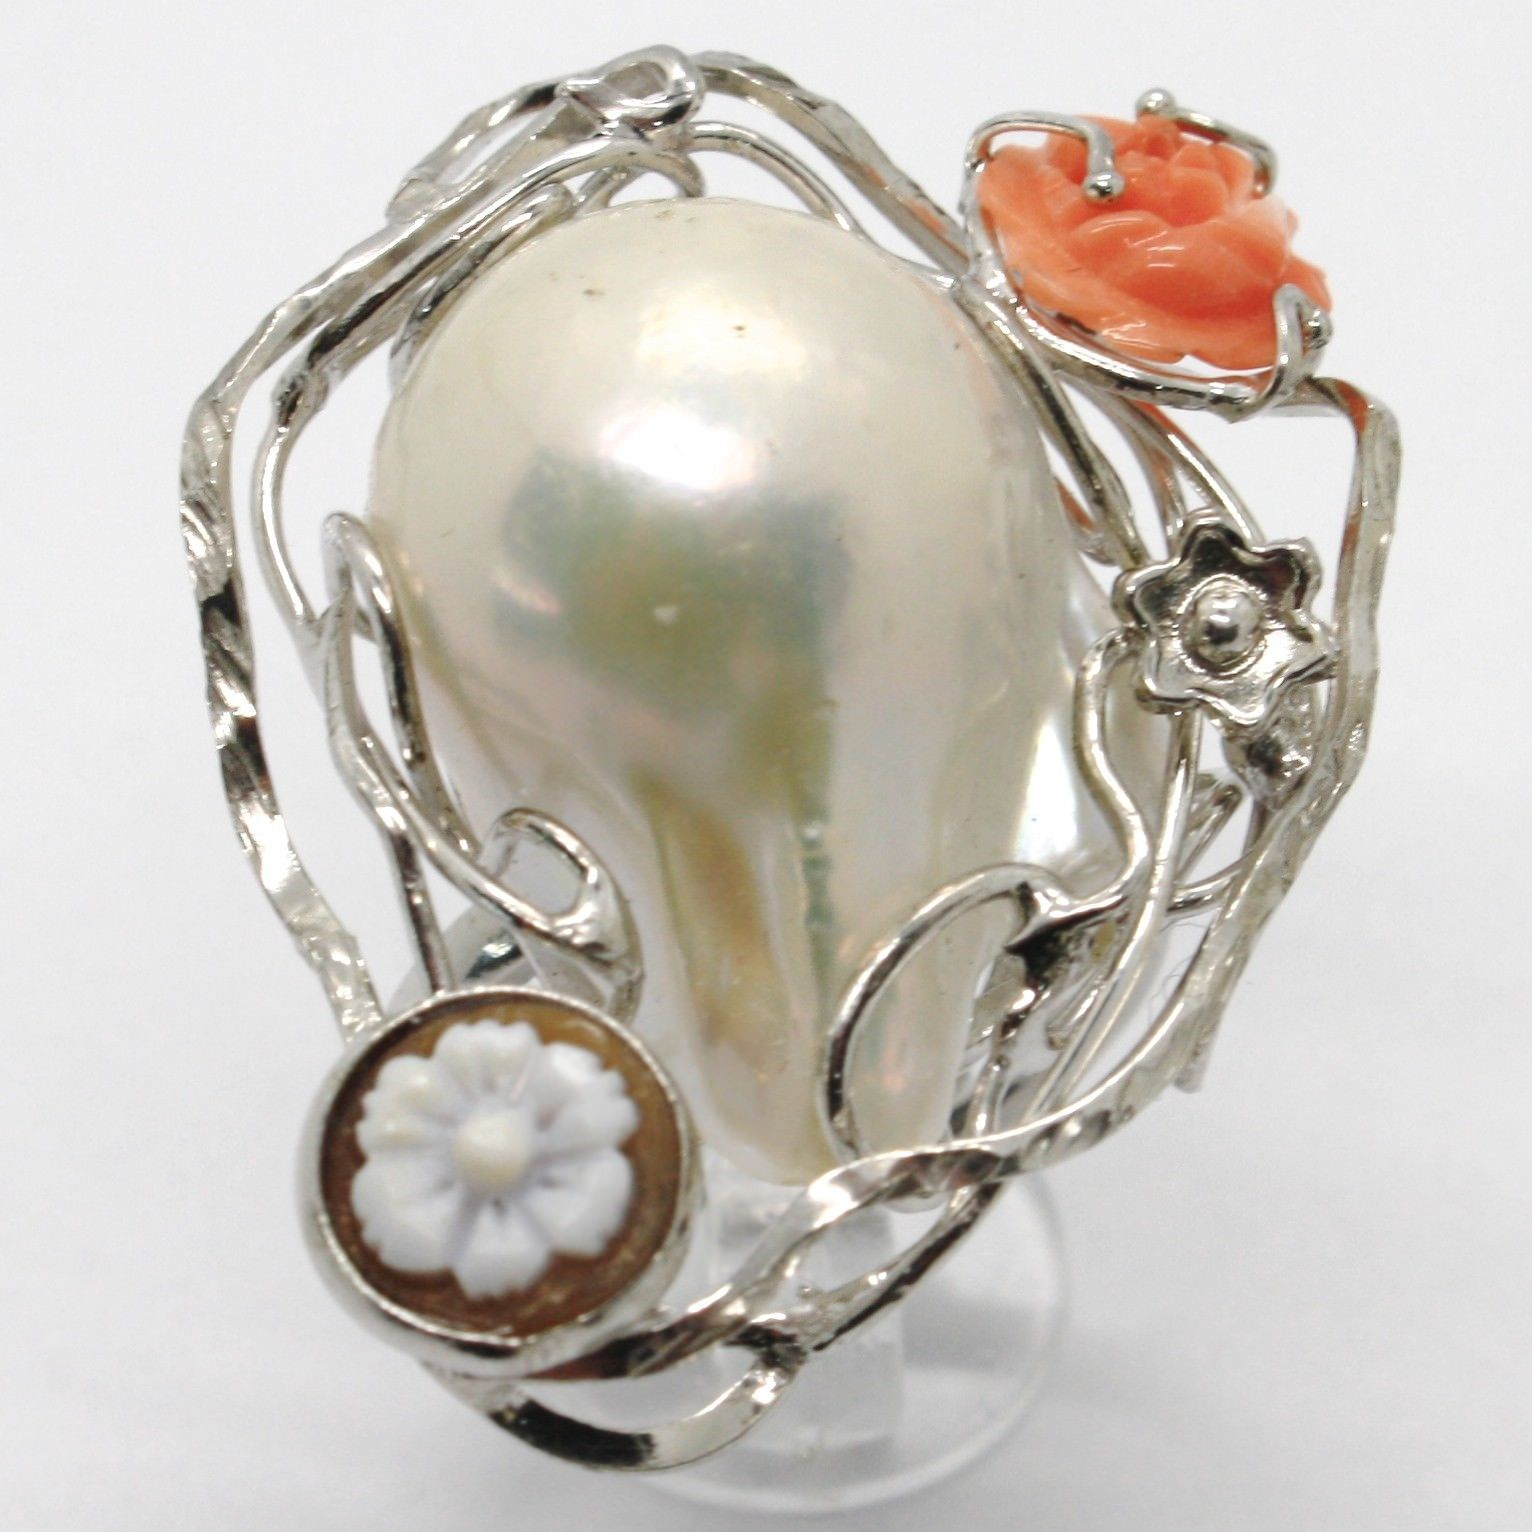 925 SILVER RING WITH CORAL PINK NATURAL PEARL AND CAMEO MADE IN ITALY